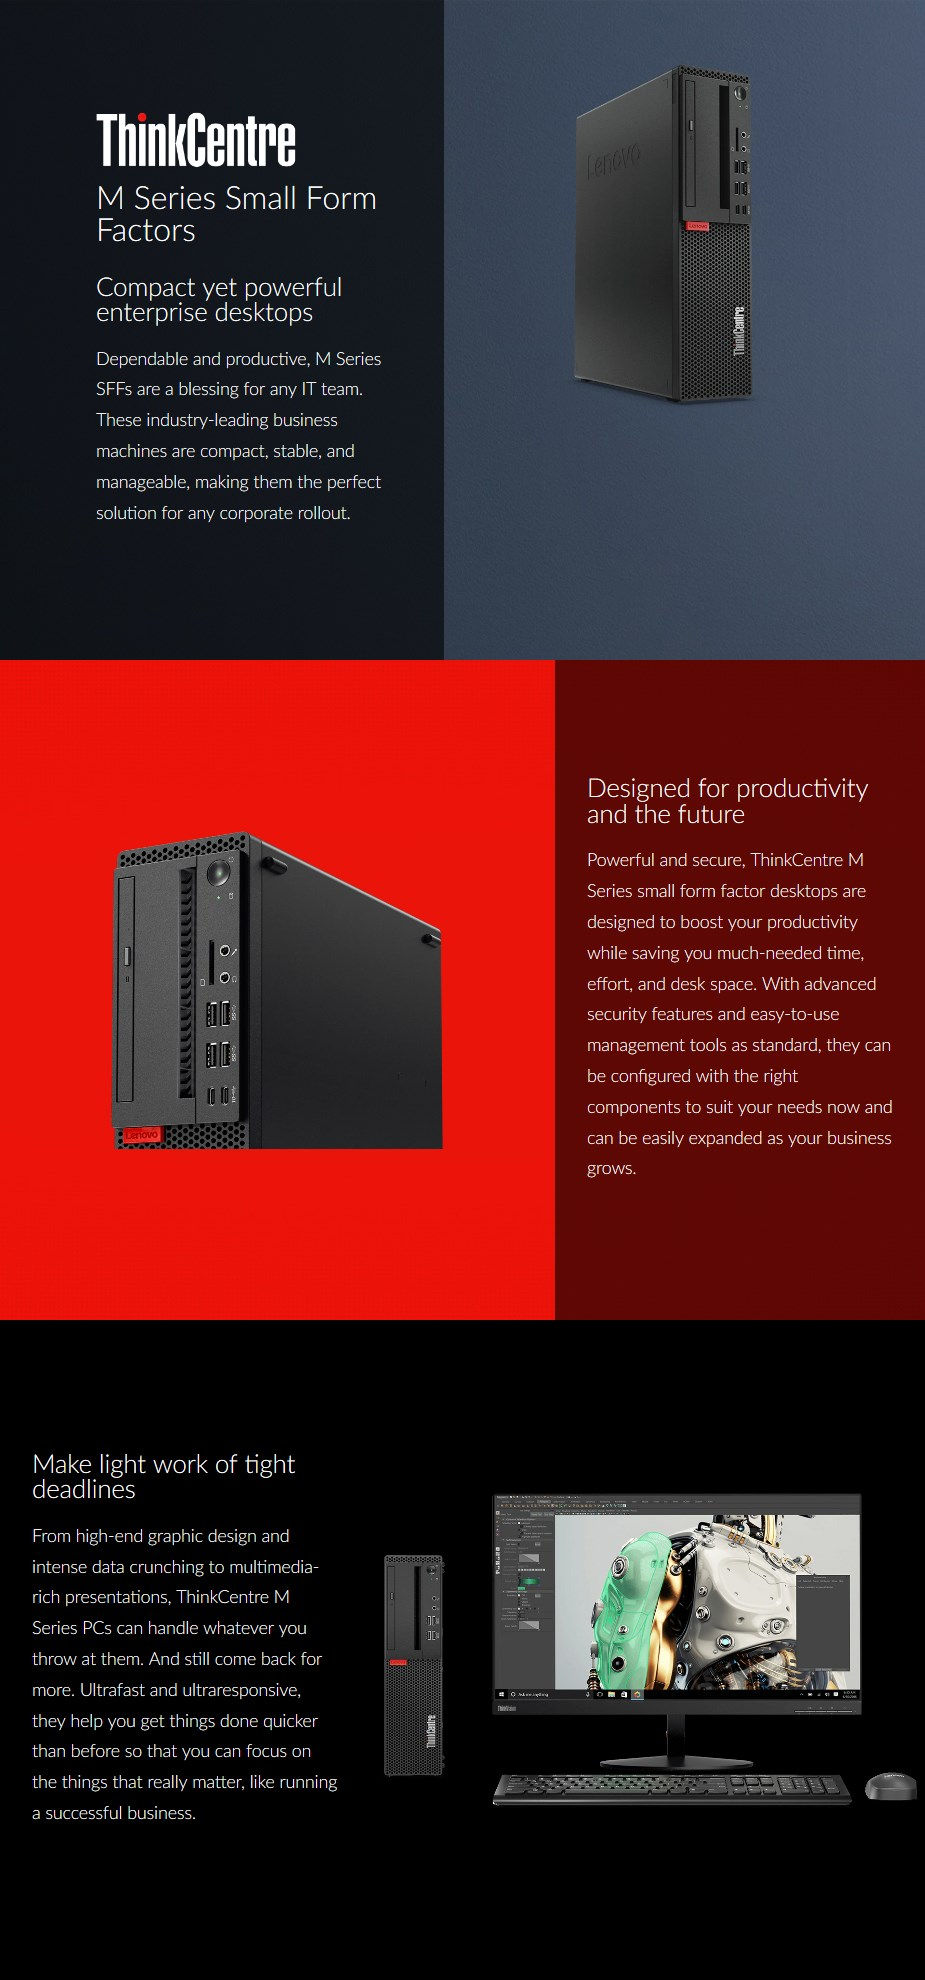 BRANDLenovo SERIESM Series SSFF FORM FACTORSmall Form Factor (SFF) CPUIntel Core i9-9900 (12MB Cache, Processor Clock Speed: 3.1GHz, Maximum: 5.0 GHz) MEMORY16GB DDR4 2666MHz UDIMM STORAGE512GB PCIe NVMe Solid State Drive GRAPHICS CARDIntegrated Intel UHD 630 Graphics OPERATING SYSTEMWindows 10 Pro 64-bit INTERFACE (FRONT)2 x USB 3.1 Gen 1, 2 x USB 3.1 Gen 2, 1 x USB 3.1 Type-C Gen 1 (15W) INTERFACE (BACK)2 x DisplayPort, 1 x VGA OPTICAL DRIVEDVD-Writer DIMENSIONS, L x W x H (mm)289.6 x 91.4 x 342.9 WIRELESS + BLUETOOTHIntel Wireless-AC 9560 2x2 AC LAN +  Bluetooth 5.0 WEIGHT (kg)5.4 WARRANTY3 Years Limited On-Site Warranty MODEL NUMBER10SJA008AU - Desktop overview 1